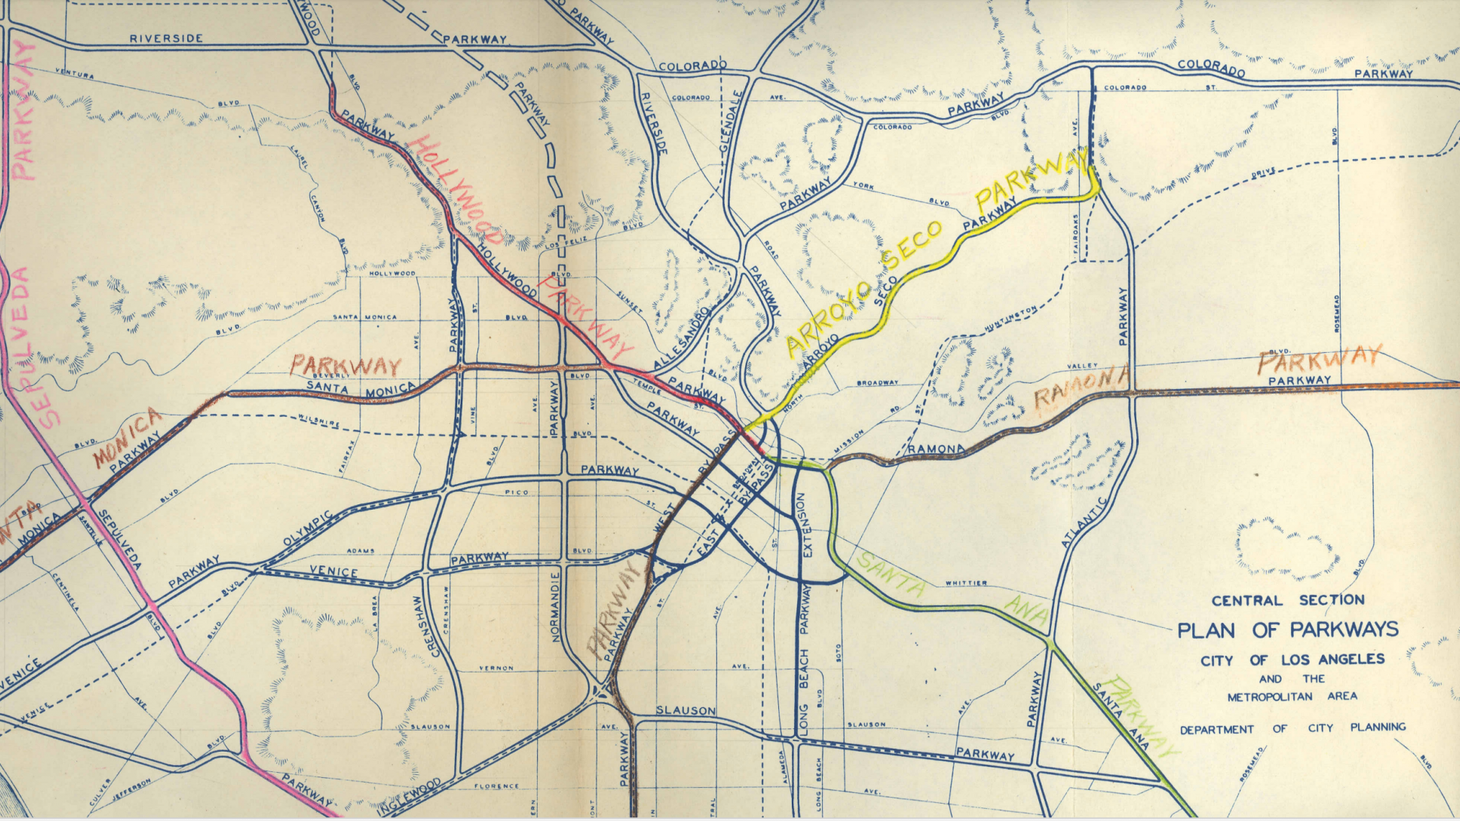 4 freeways that did not get built in LA (and why) | KCRW on detailed map of los angeles county cities map, ga interstate map, mi interstate map, miami interstate map, houston interstate map, az interstate map, san diego interstate map, nc interstate map, md interstate map, interstate i-10 map, co interstate map, map of louisiana map, va interstate map, sc interstate map, tx interstate map, pa interstate map, louisiana interstate map, fl interstate map, ny state interstate map, se interstate map,